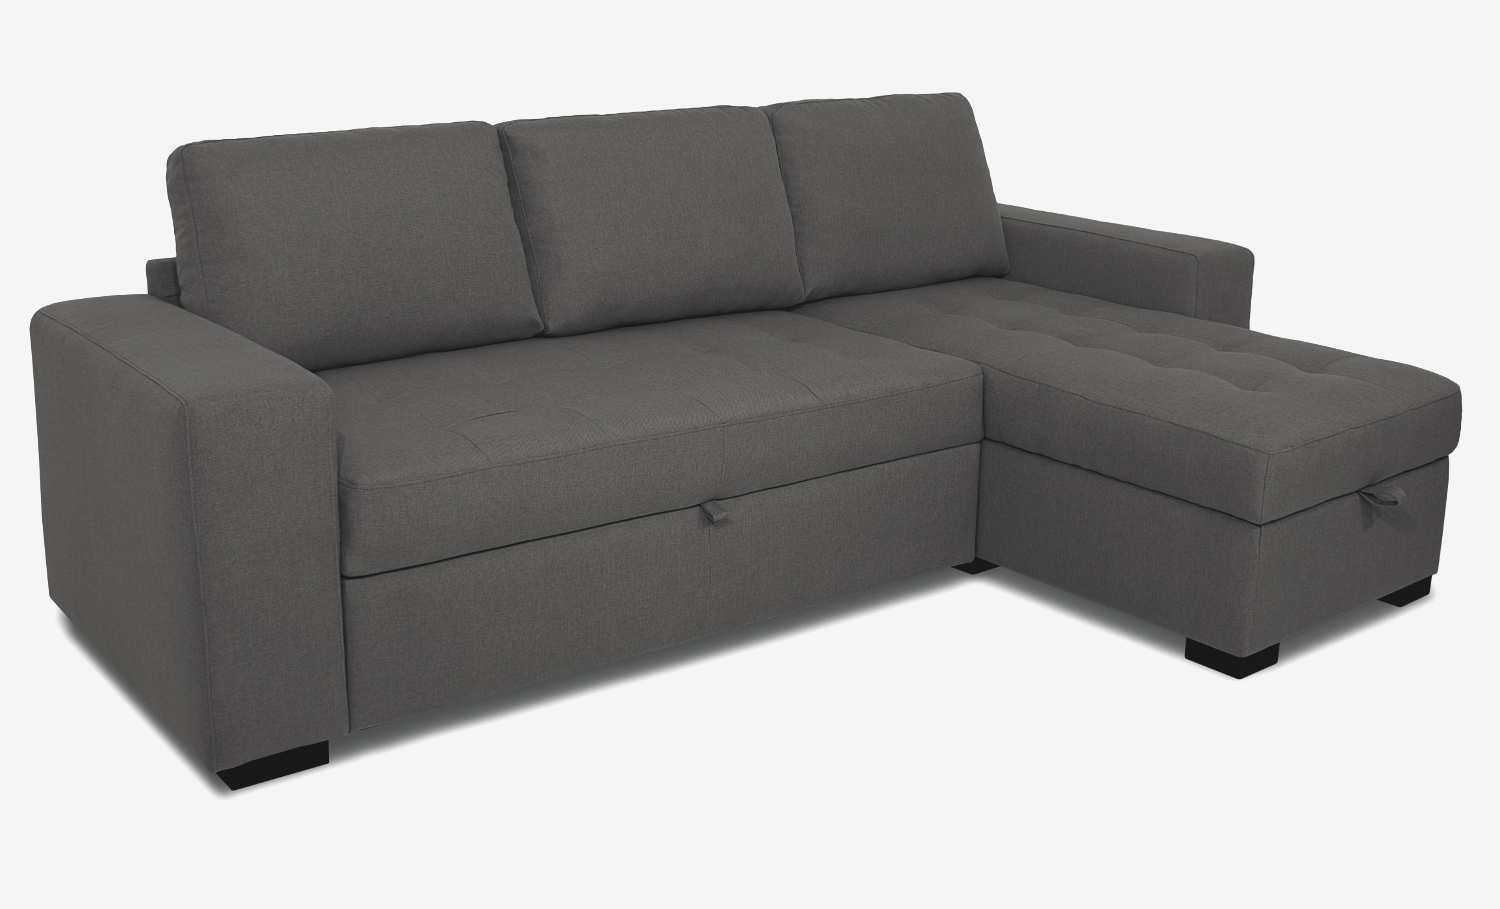 Sofa Cama Chaise Longue atractivo único sofa Cama Chaise Longue Conforama Of 48  Magnífica sofa Cama Chaise Longue